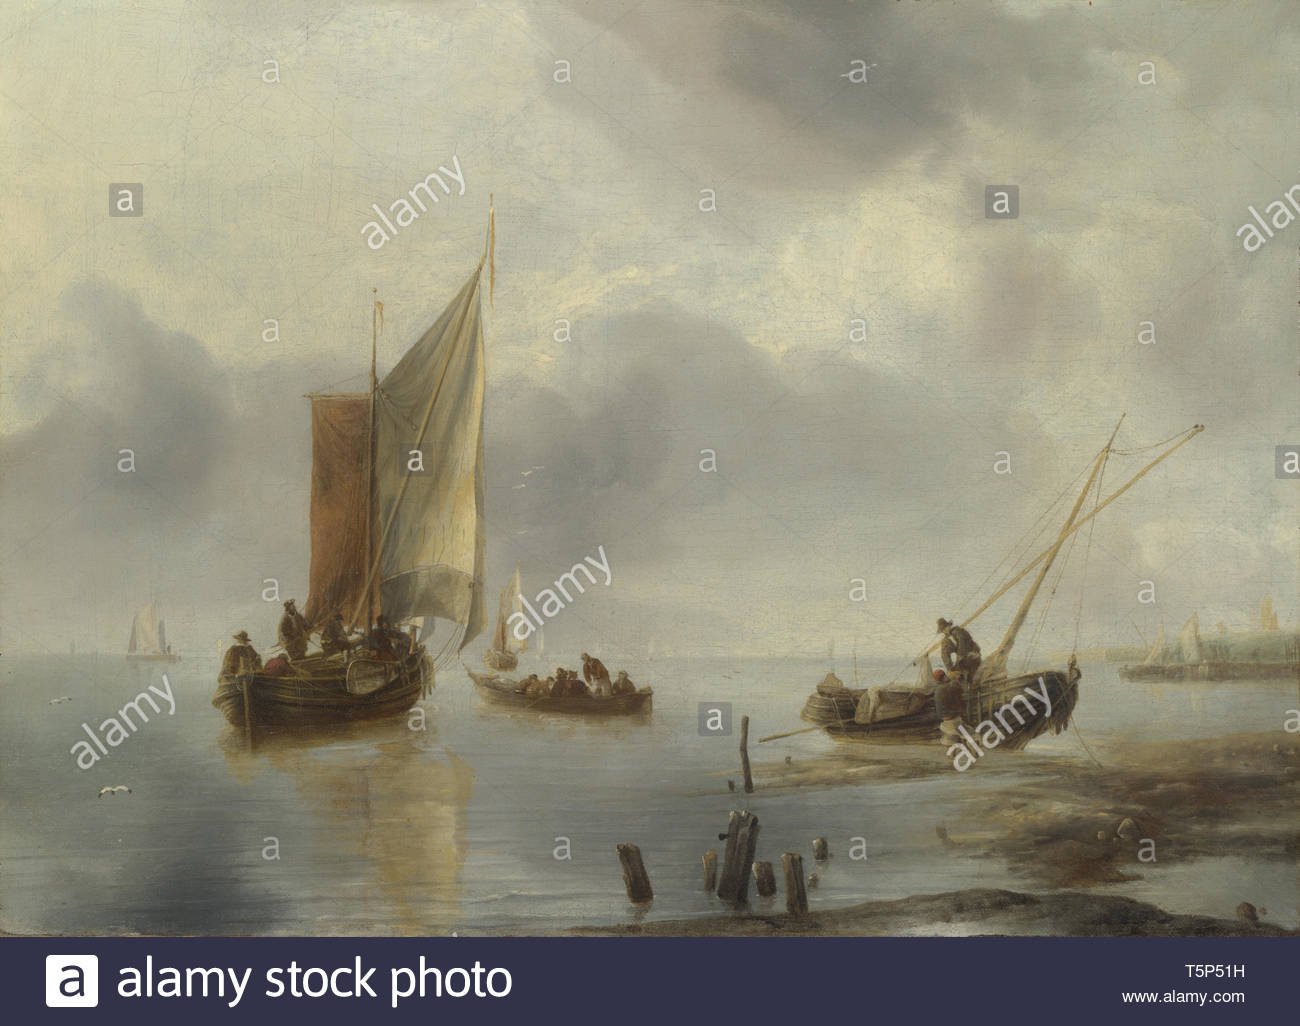 Jan van de Cappelle-A Small Vessel in Light Airs, and Another Ashore - Stock Image